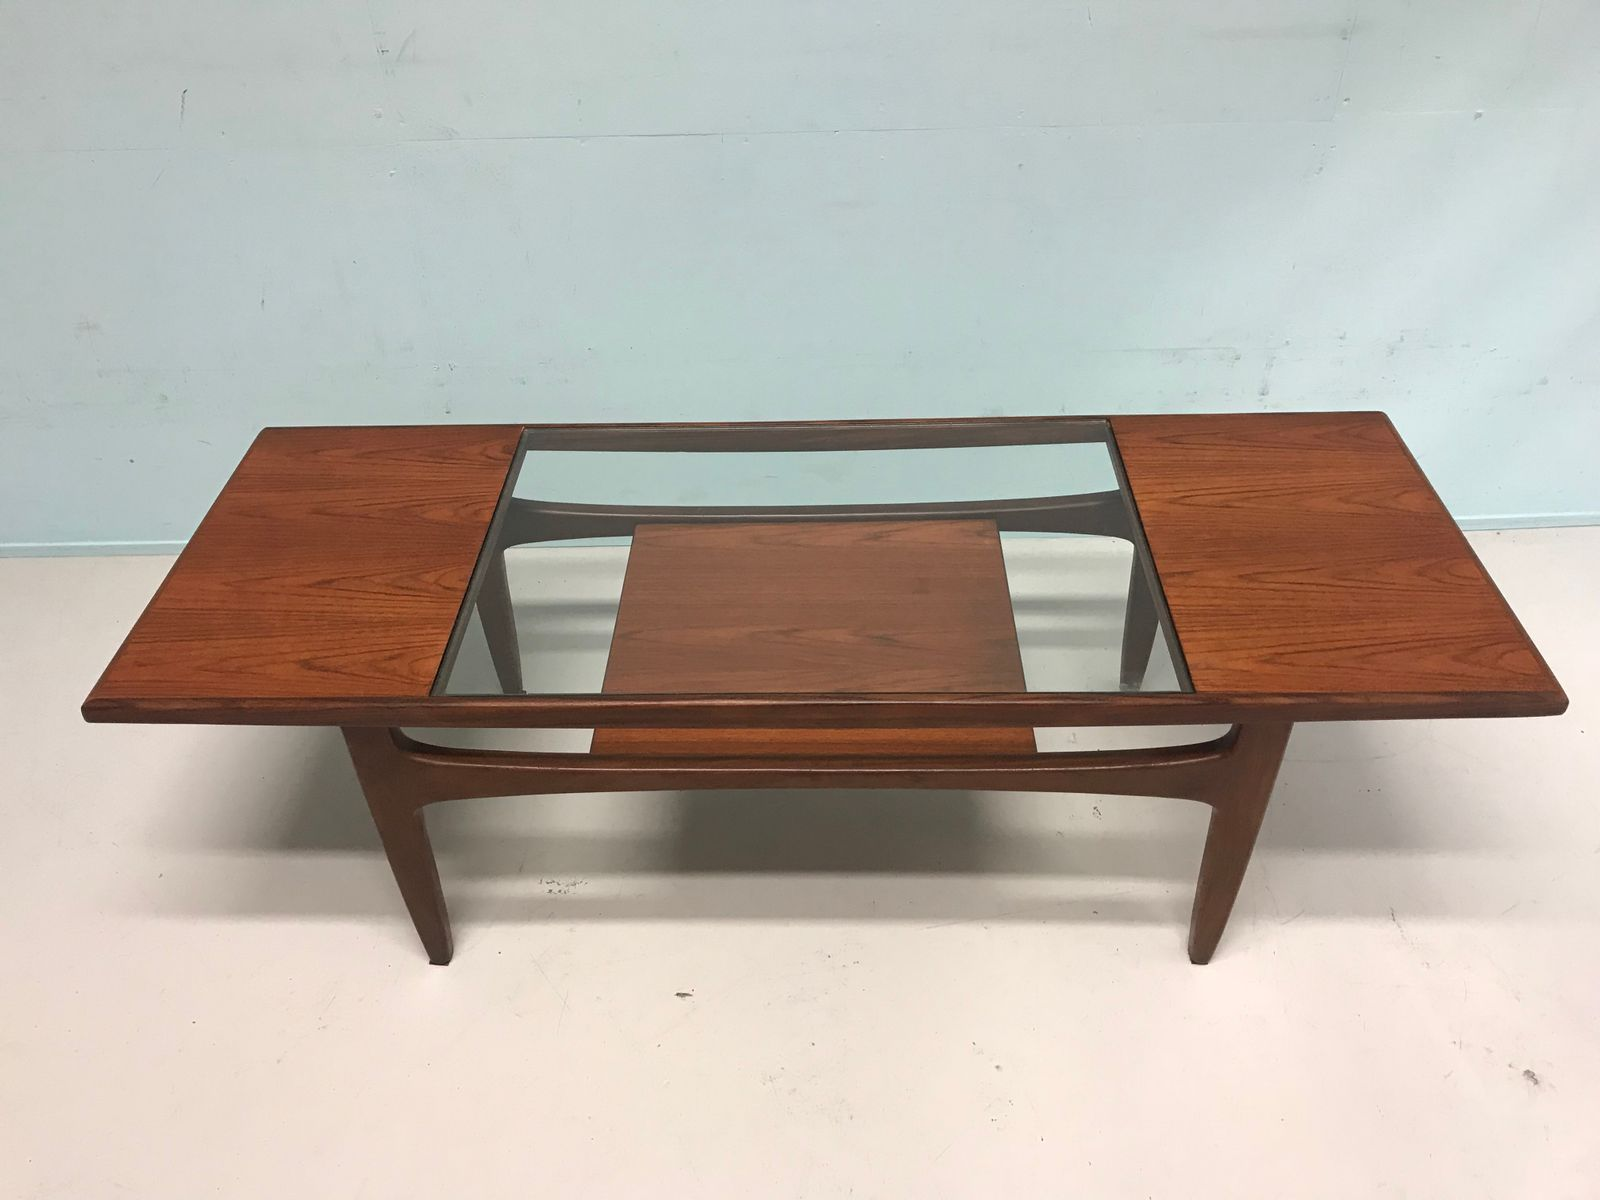 Mid century modern teak coffee table from g plan for sale for Modern coffee table sale